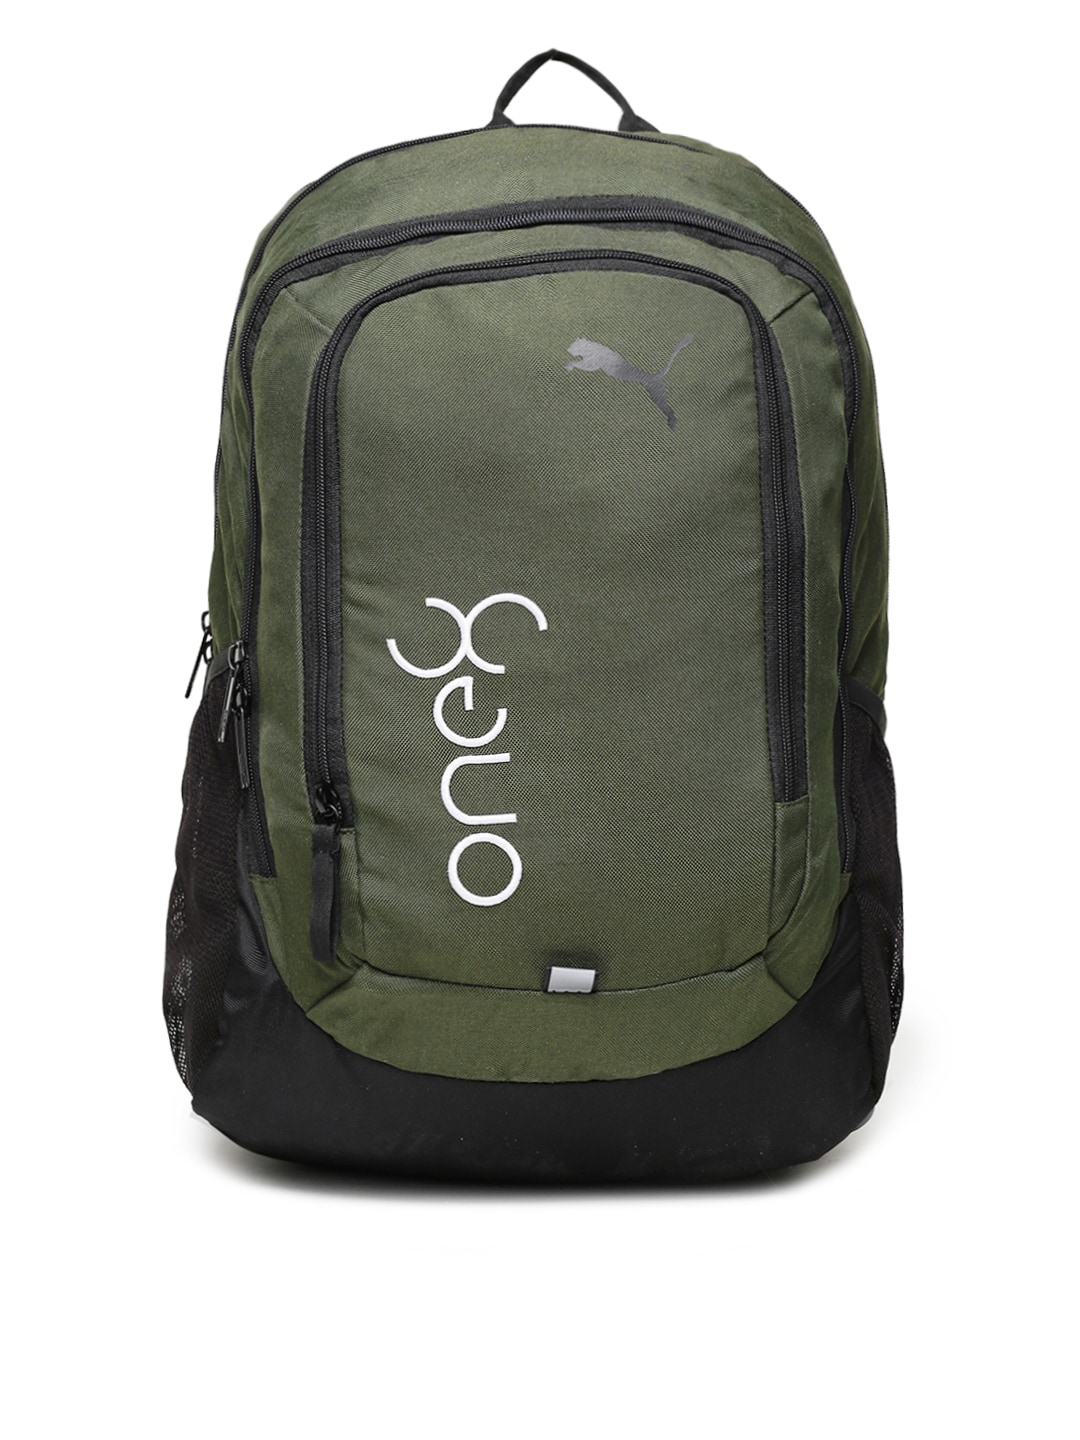 a11c2968d302 Laptop Bag - Buy Laptop Bags   Backpack Online in India